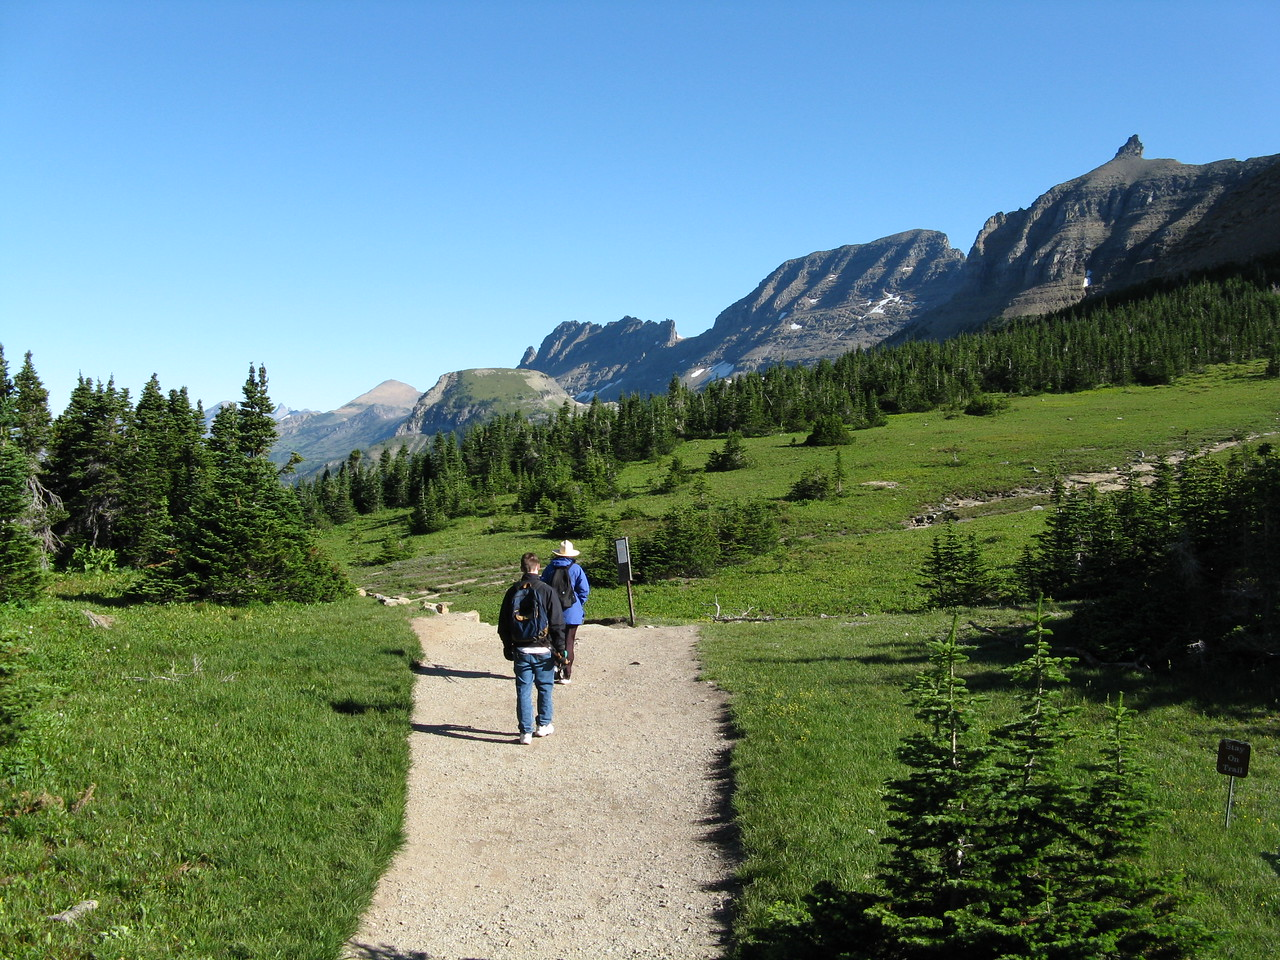 At the beginning, Highline Trail is a wide path that meanders through a meadow.